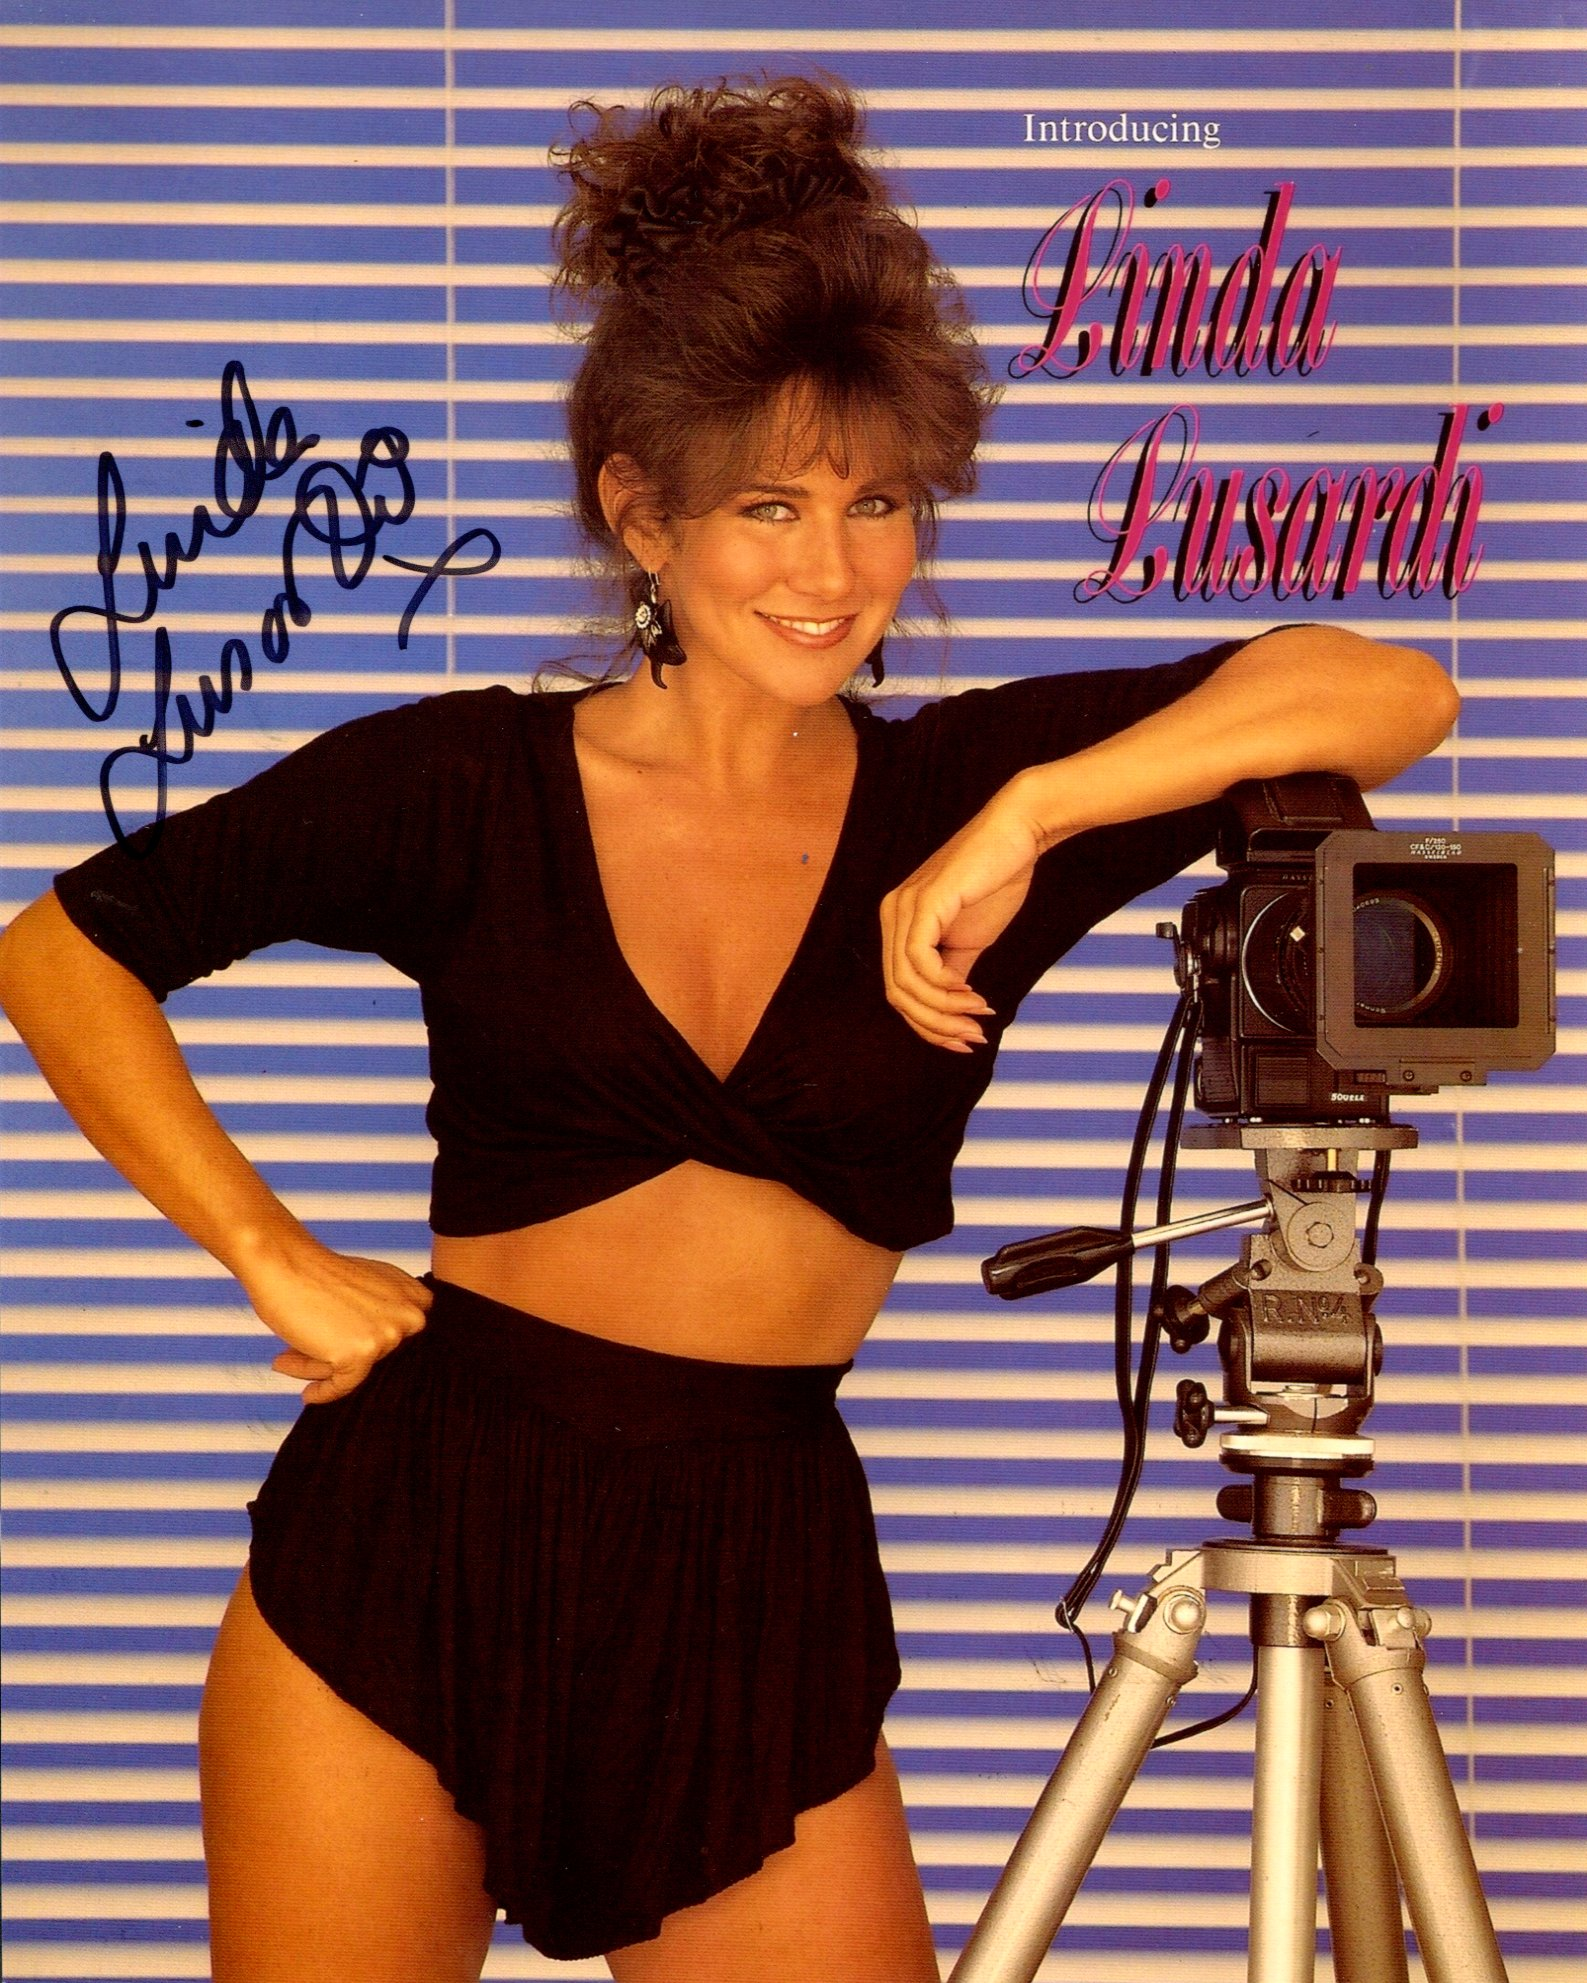 Linda Lusardi, 8x10 photo signed by former Page 3 model Linda Lusardi. Good condition. All